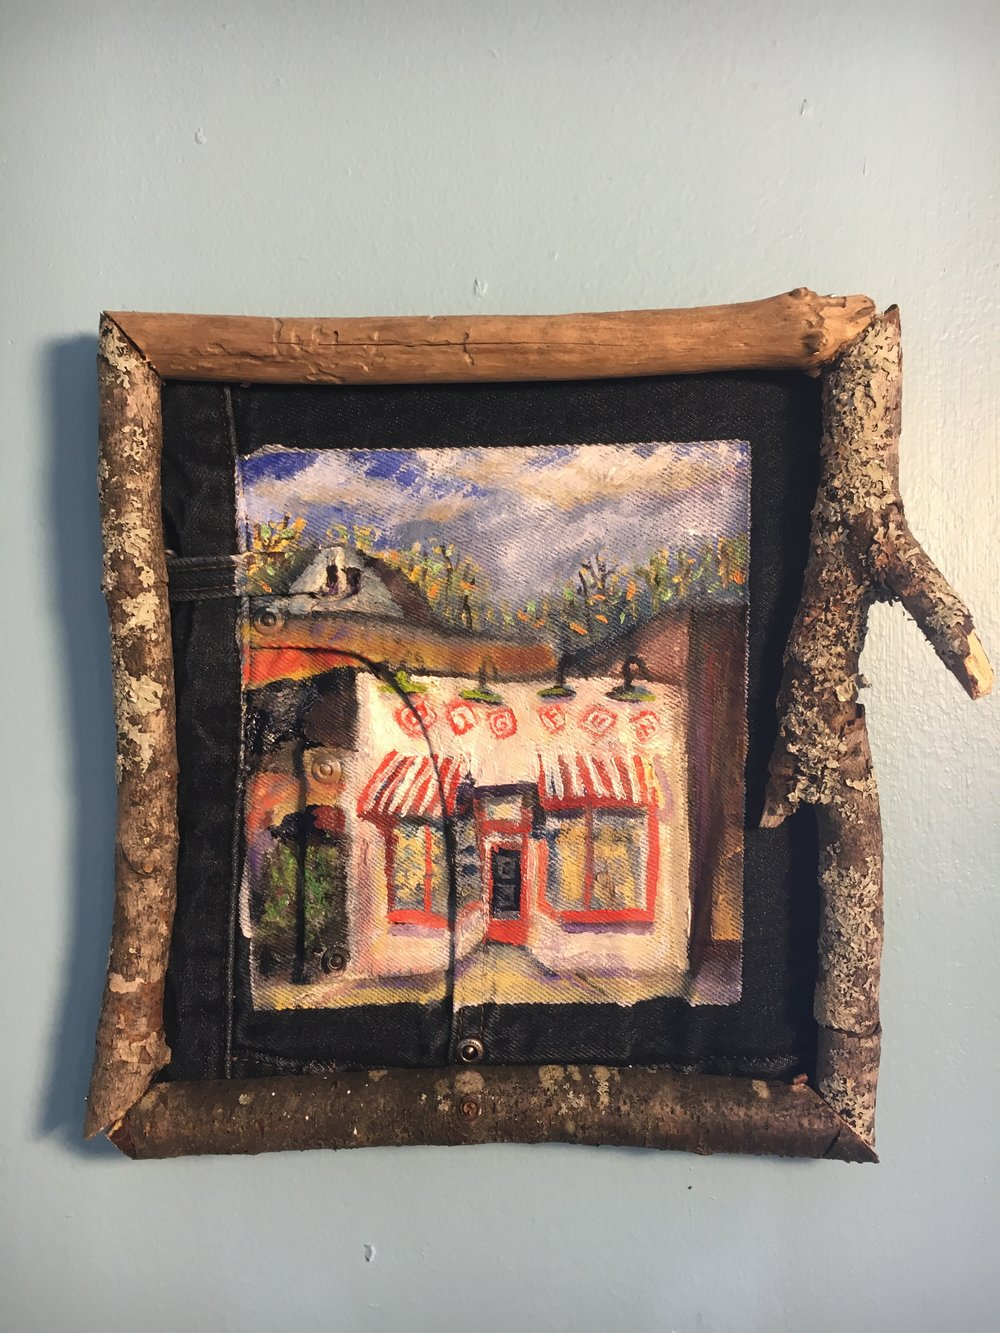 Small Original Oil Painting of Big Fun Coventry (Cleveland Heights, OH) Toy Store in Rustic Wood Frame Using Birch Bark